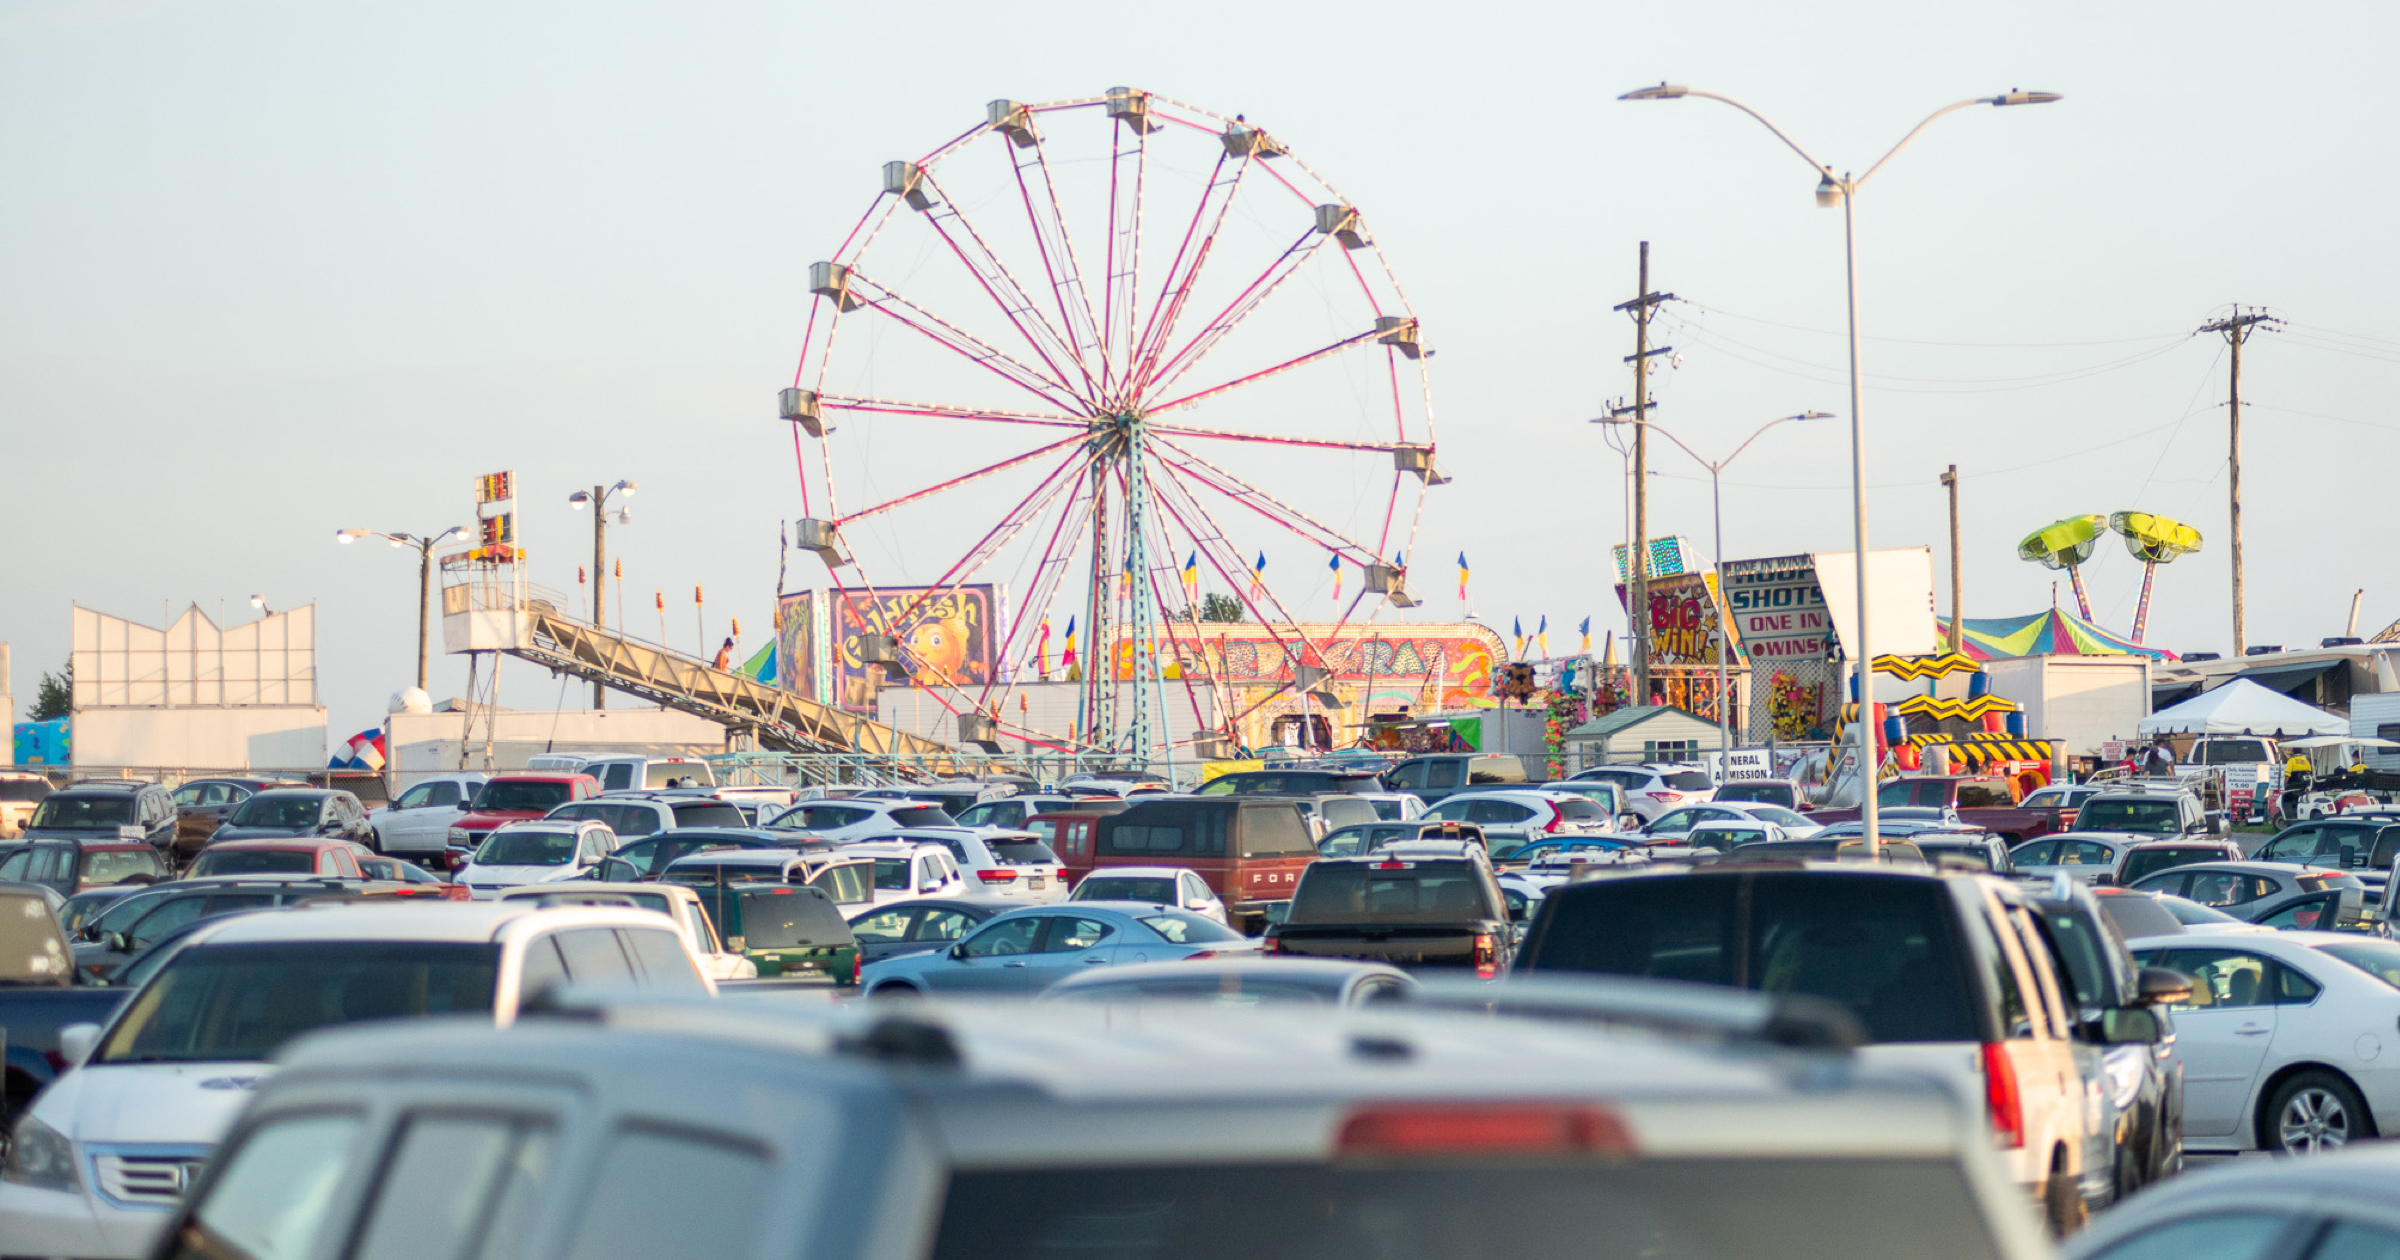 [Photo Story] Sights from the first day of the 63rd annual Lebanon Area Fair